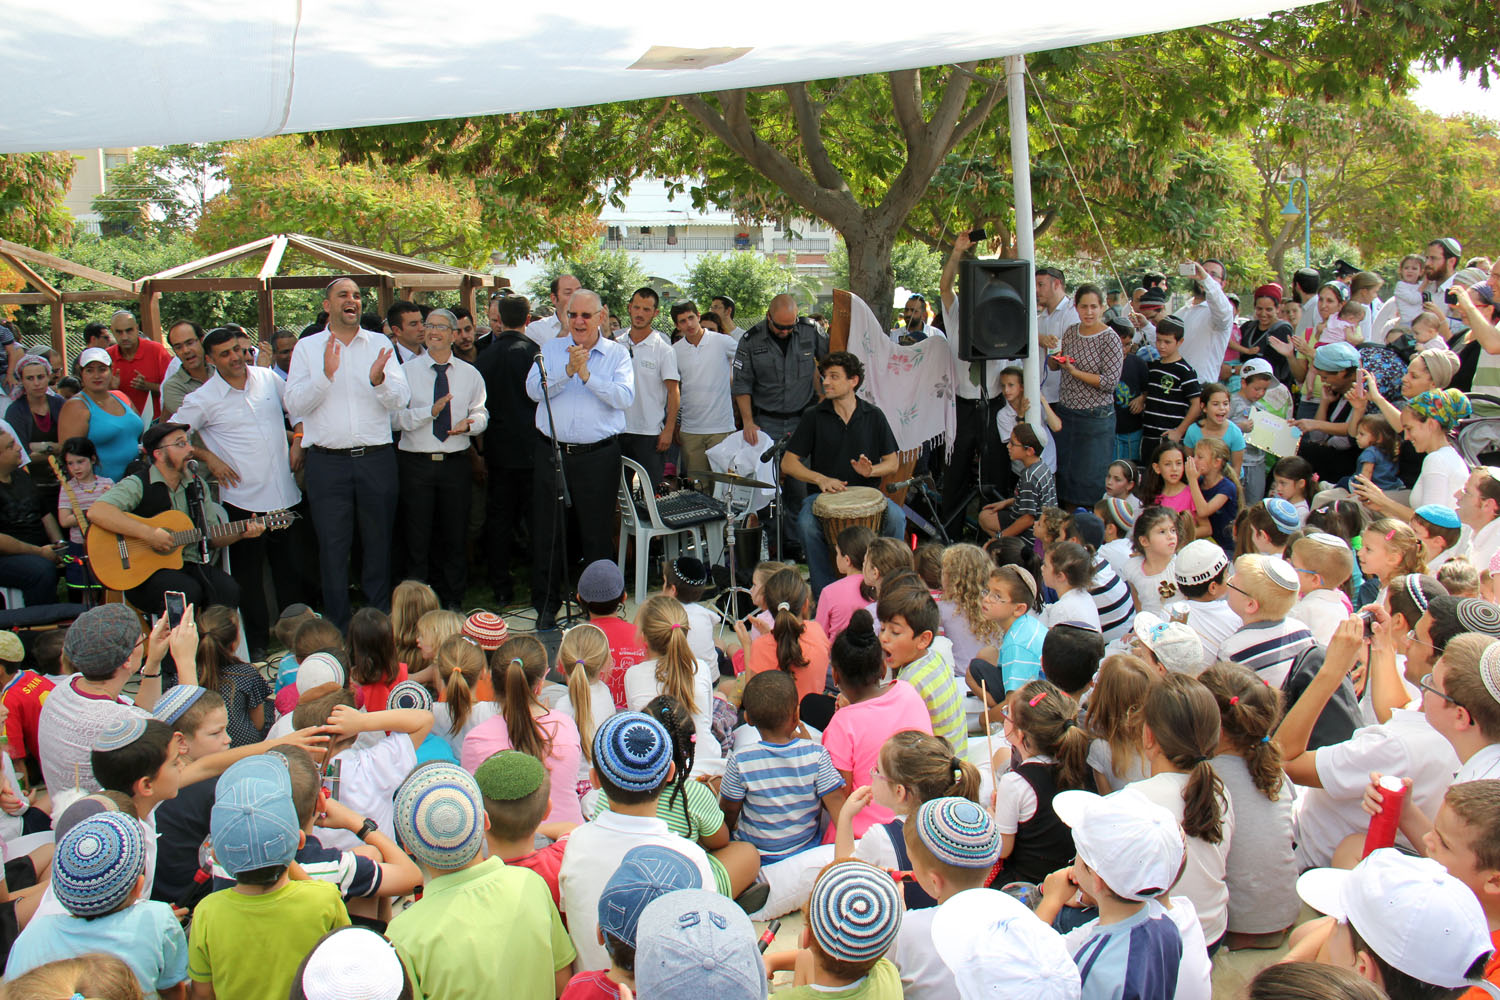 President Reuven Rivlin hosts children for entertainment in his mobile sukkah in Lod during the Sukkot holiday in 2014. Photo by Itzik Edri/GPO